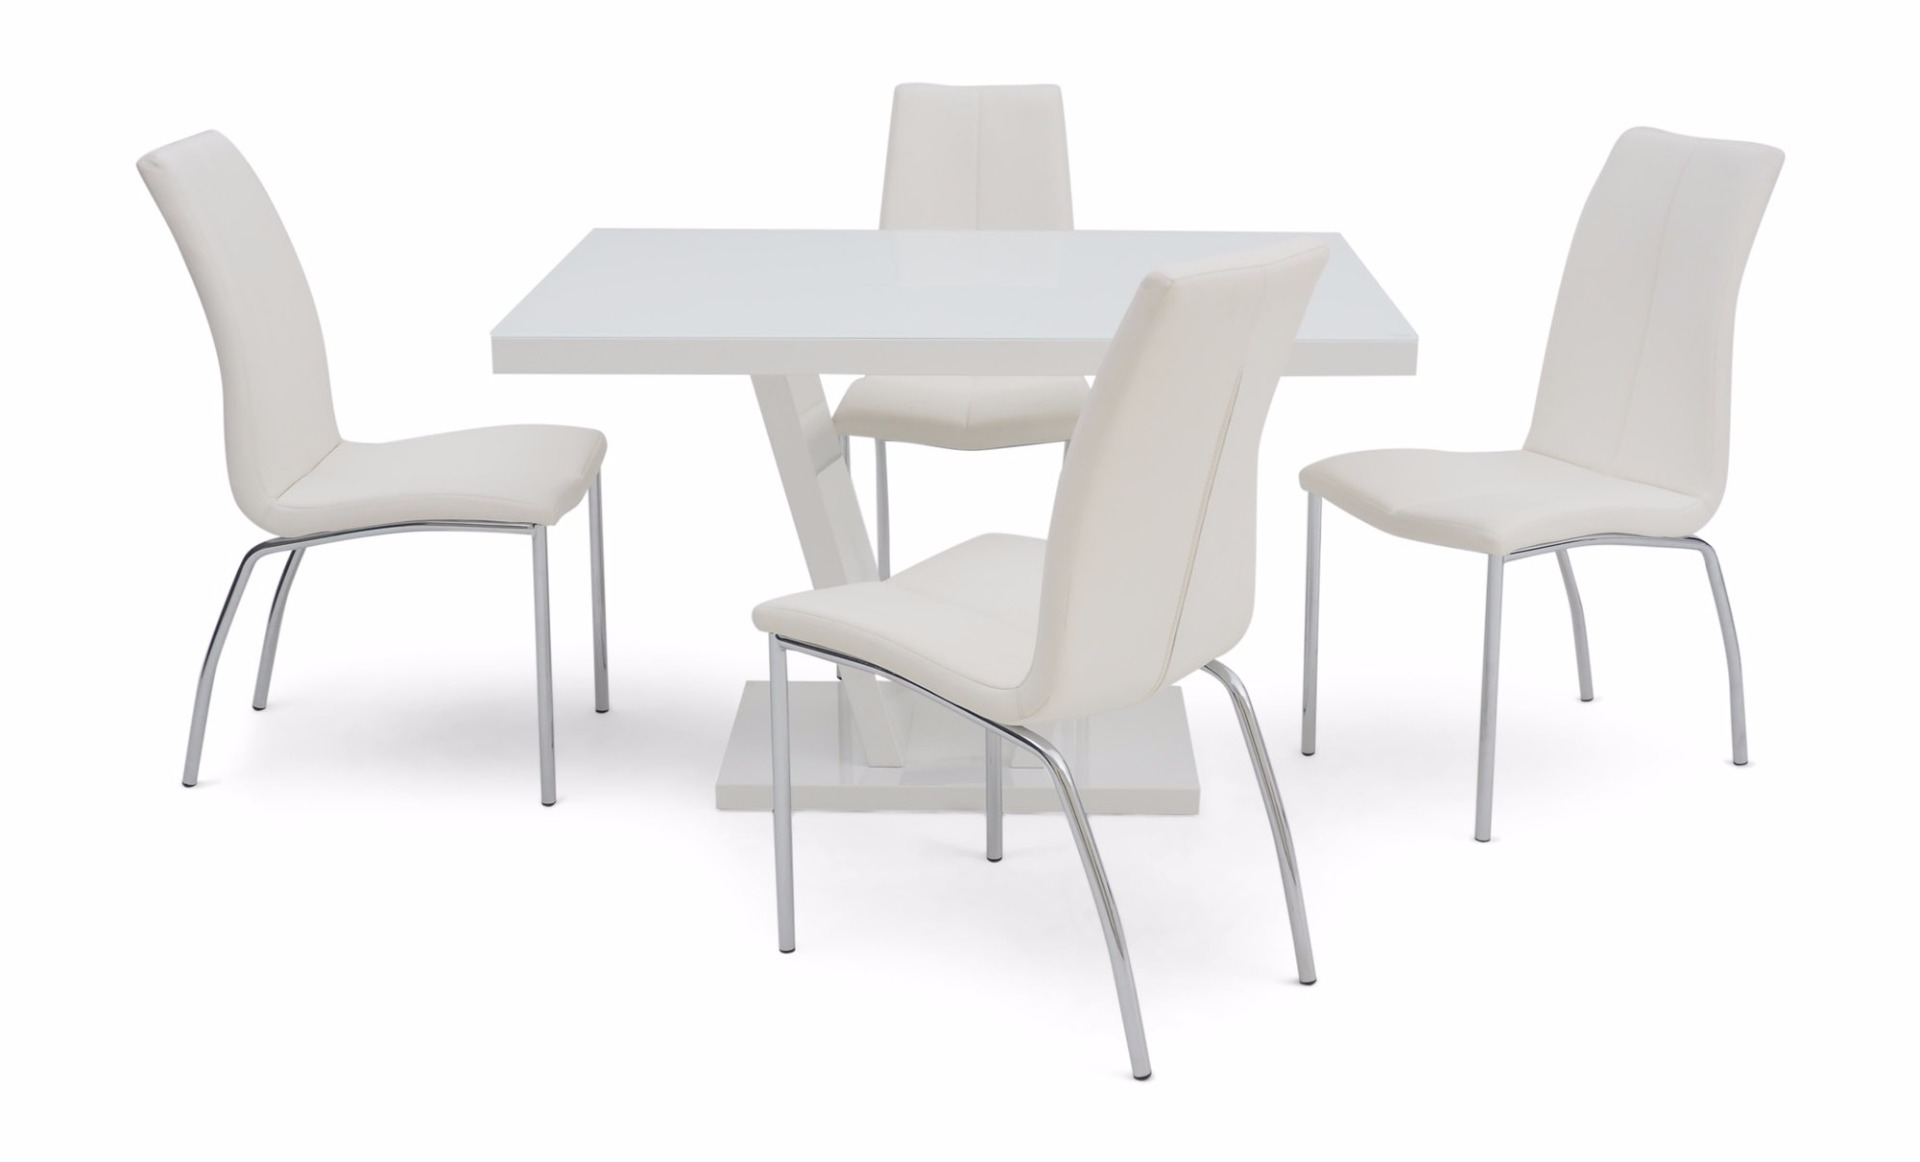 https://www.firstfurniture.co.uk/pub/media/catalog/product/f/a/fairmont_valentino_white_high_gloss_dining_table_4_ava_black_chairs_1_1.jpg